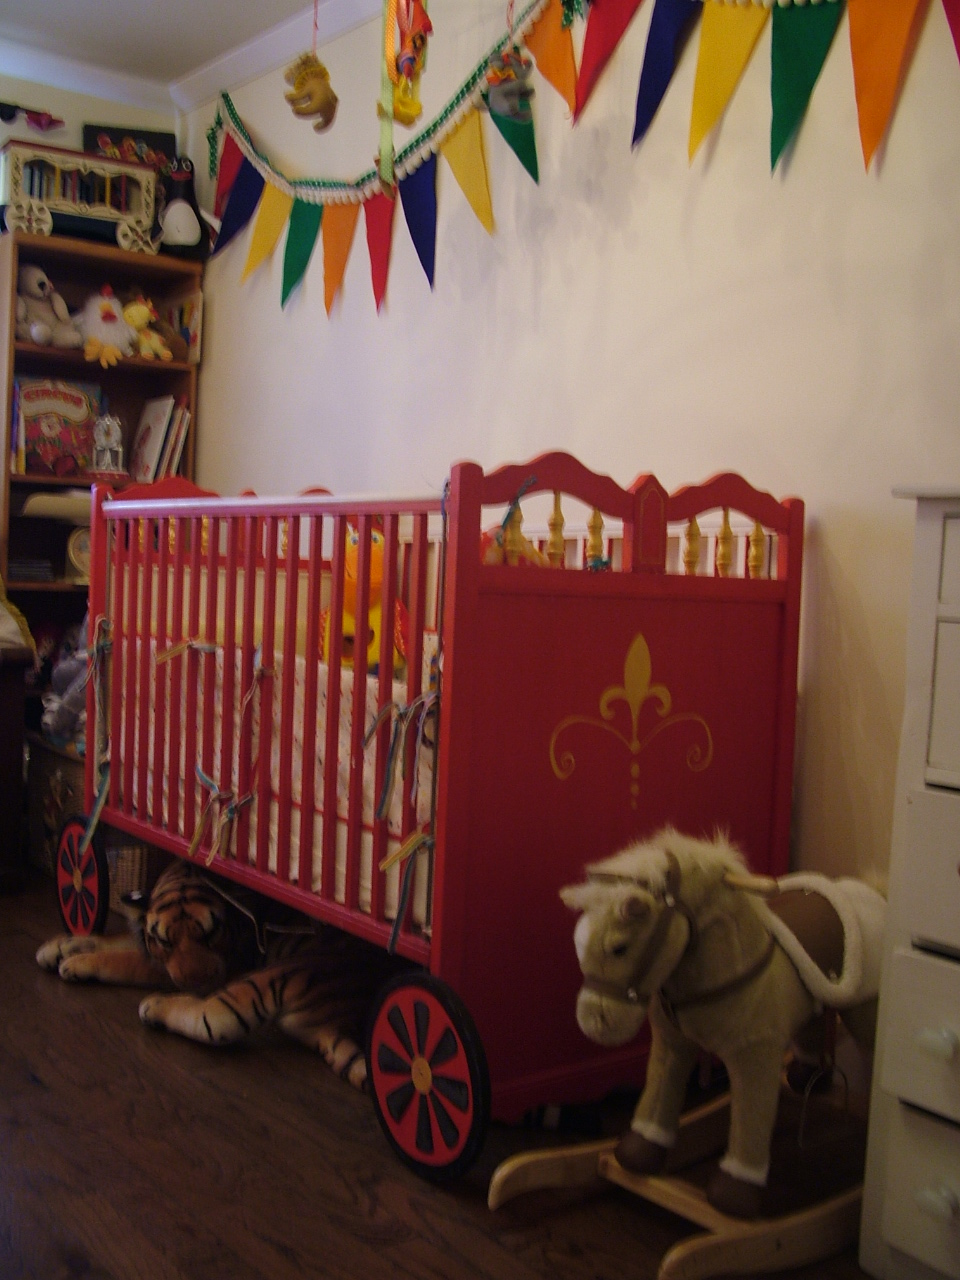 Little House Well Done: Circus Chic Carnival Sweet Kids Room or ...